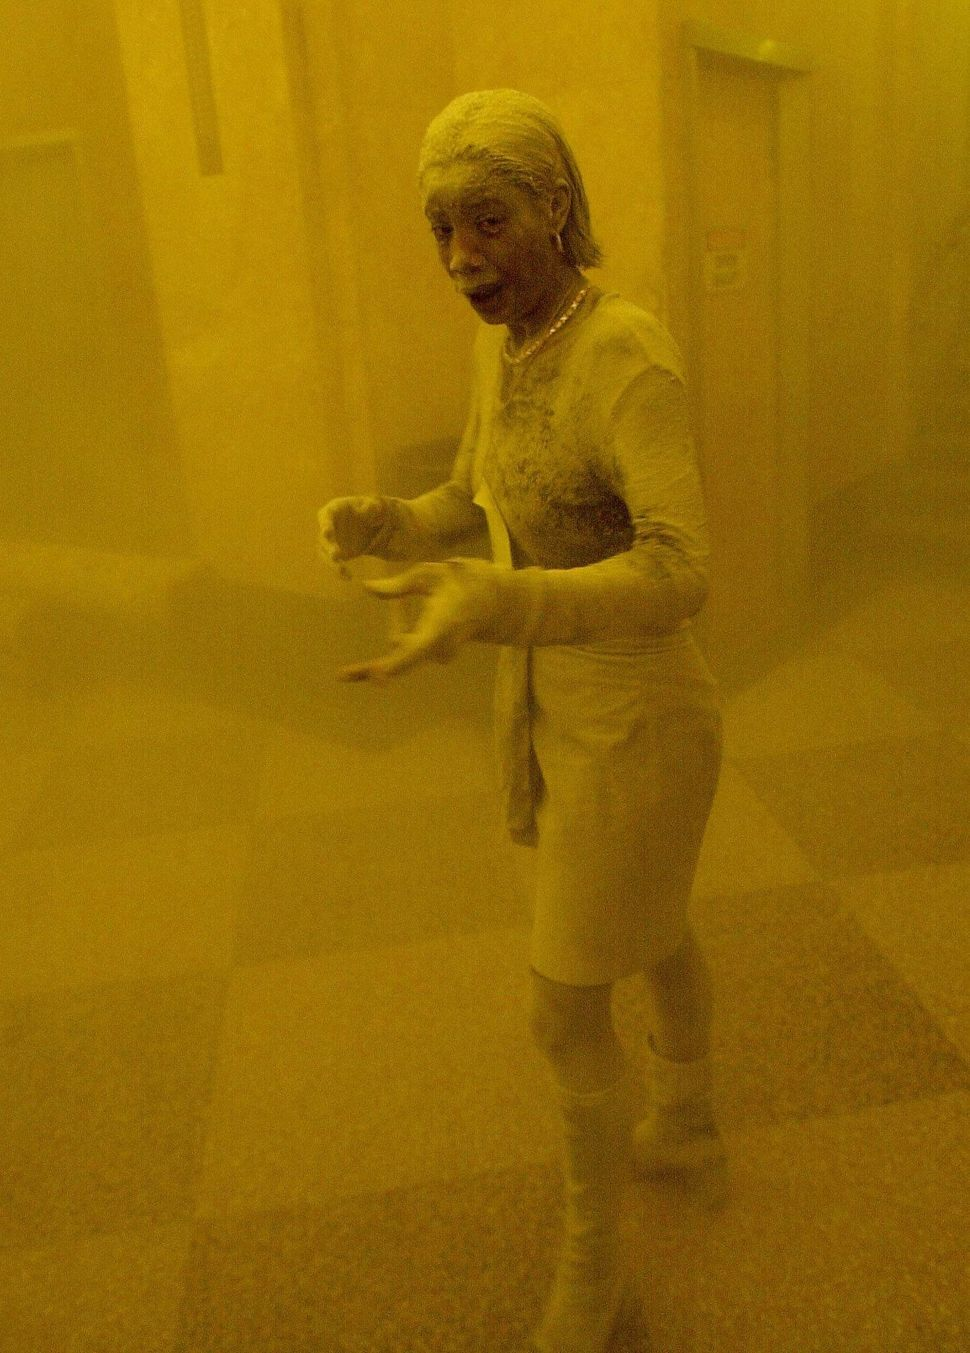 Marcy Borders is covered in dust as she takes refuge in an office building. Borders died in 2015after a battle with can